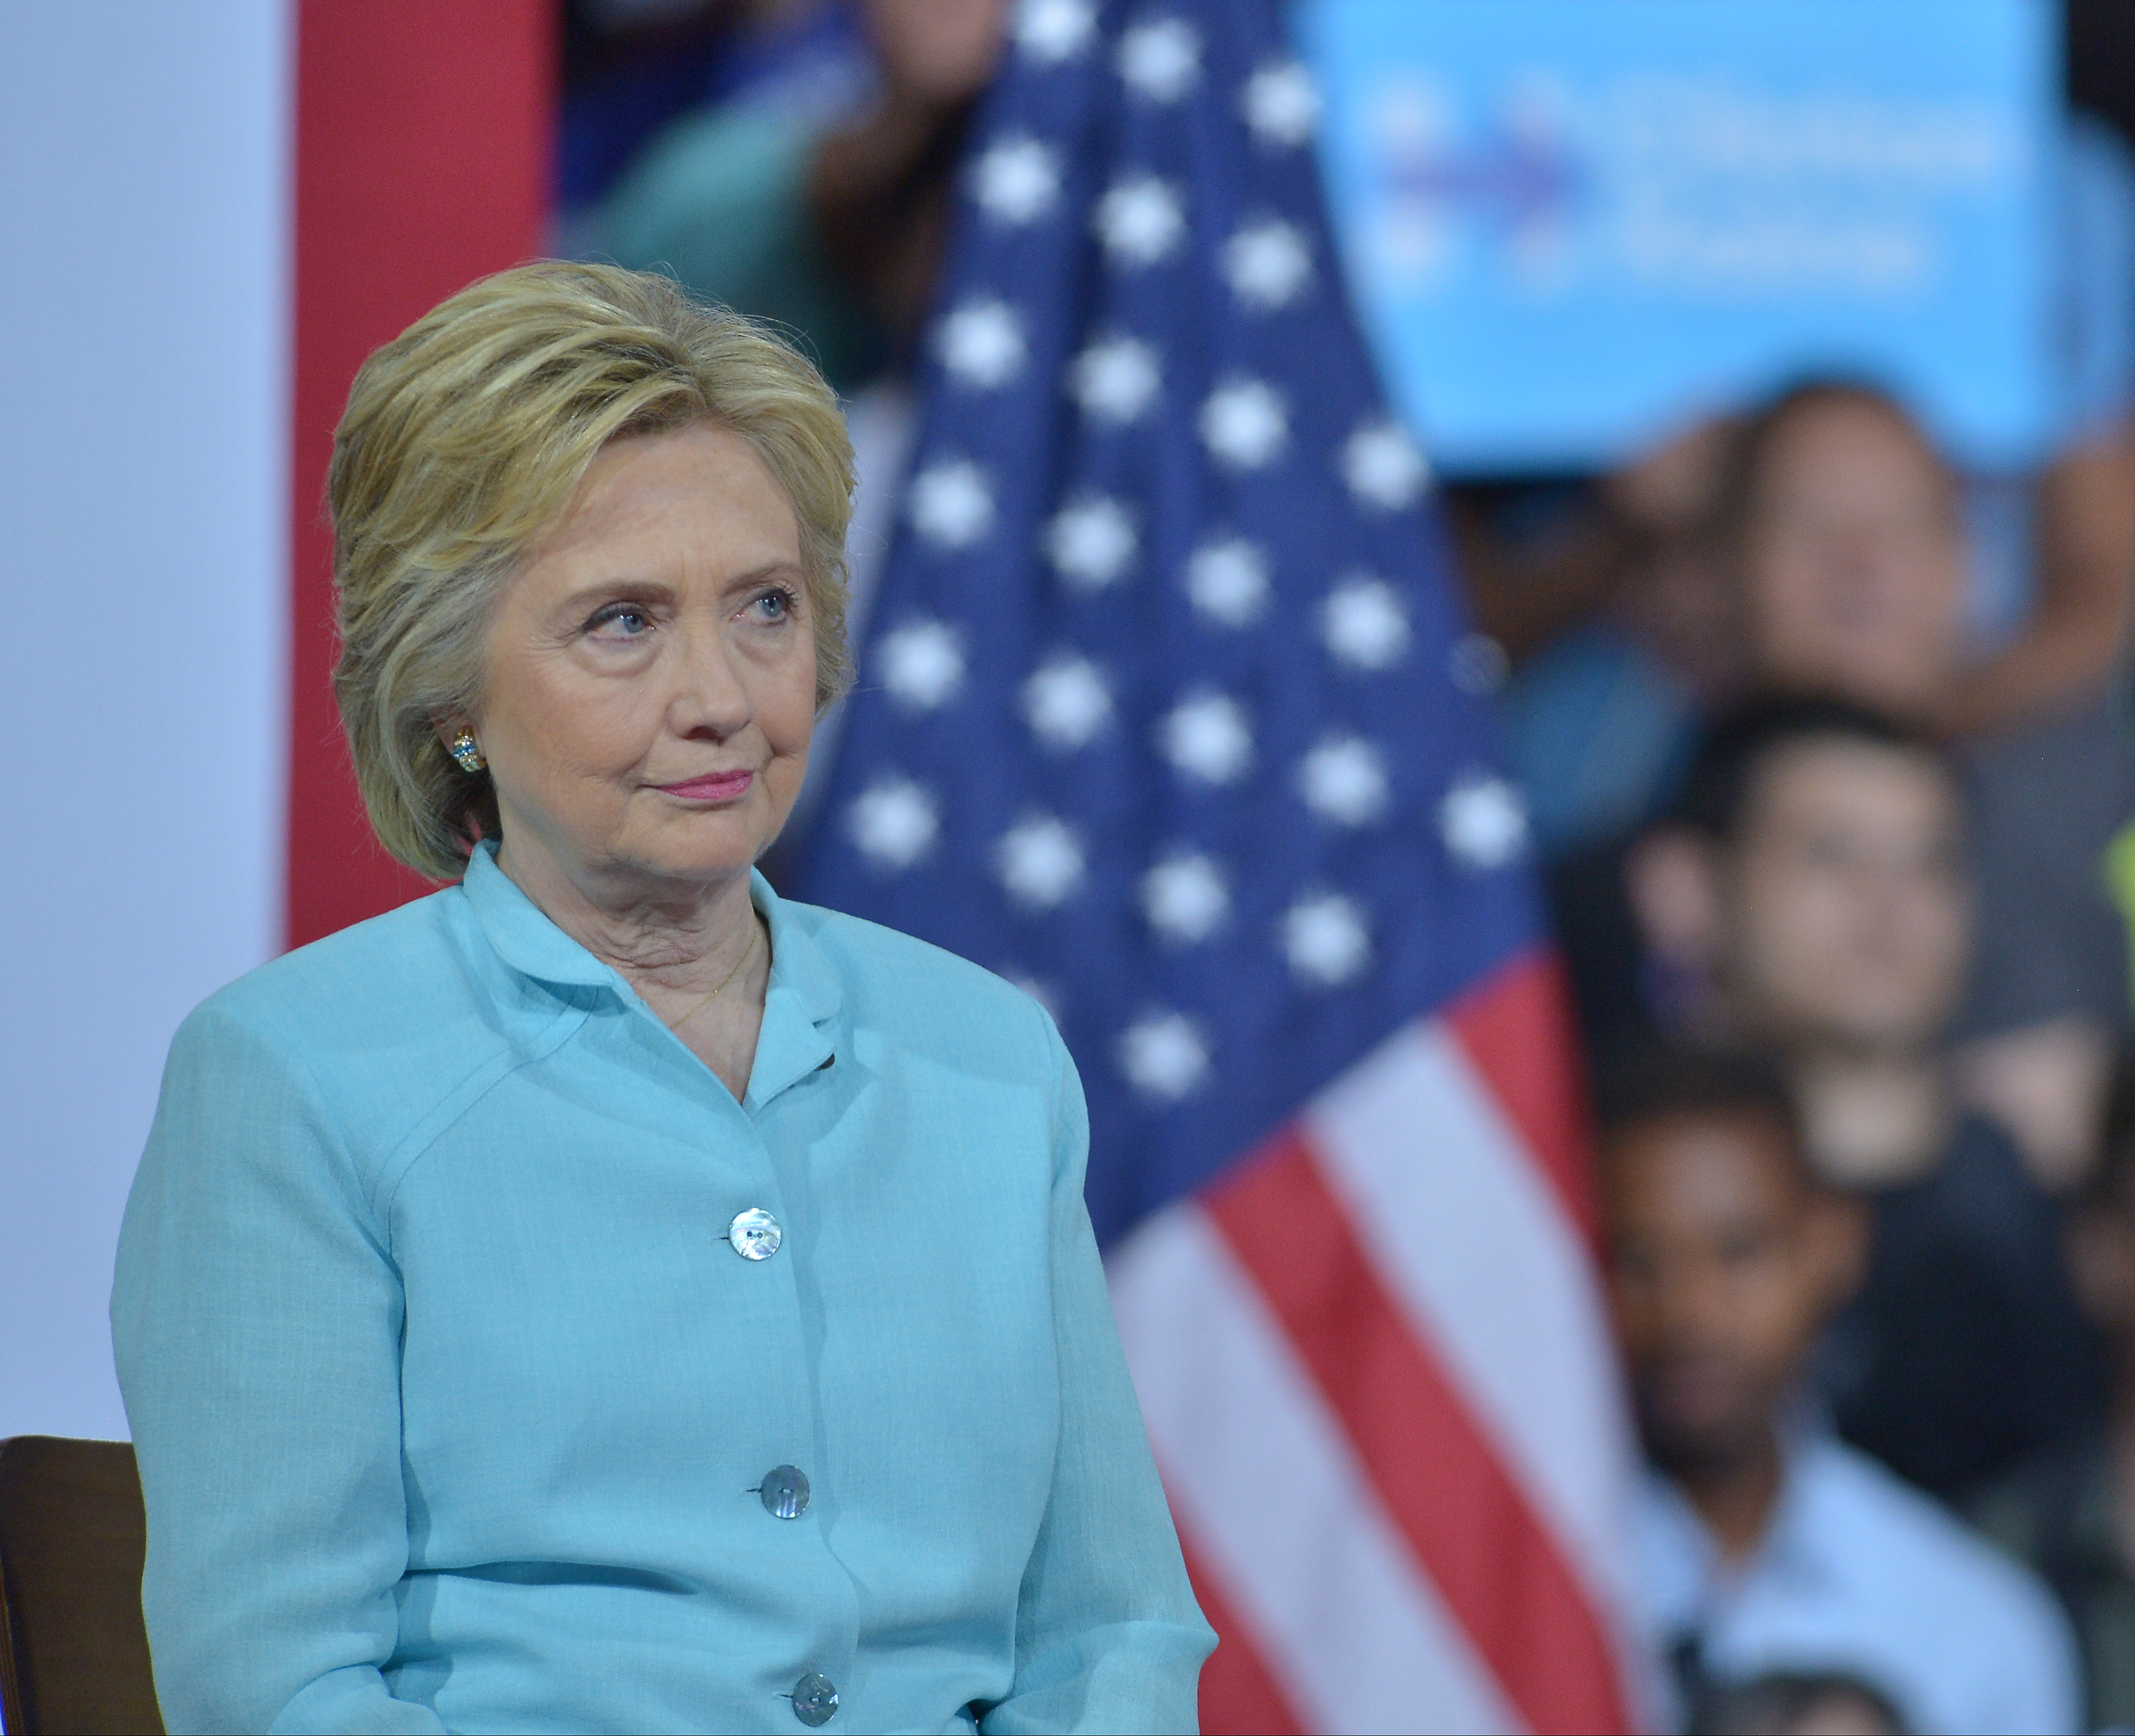 MIAMI, FL - JULY 23:  Democratic Presumptive Nominee for President former Secretary of State Hillary Clinton speak at a rally with her Democratic candidate for Vice President, U.S. Senator Tim Kaine (D-VA) (L) at the Florida International University Panther Arena, Florida on July 23, 2016.